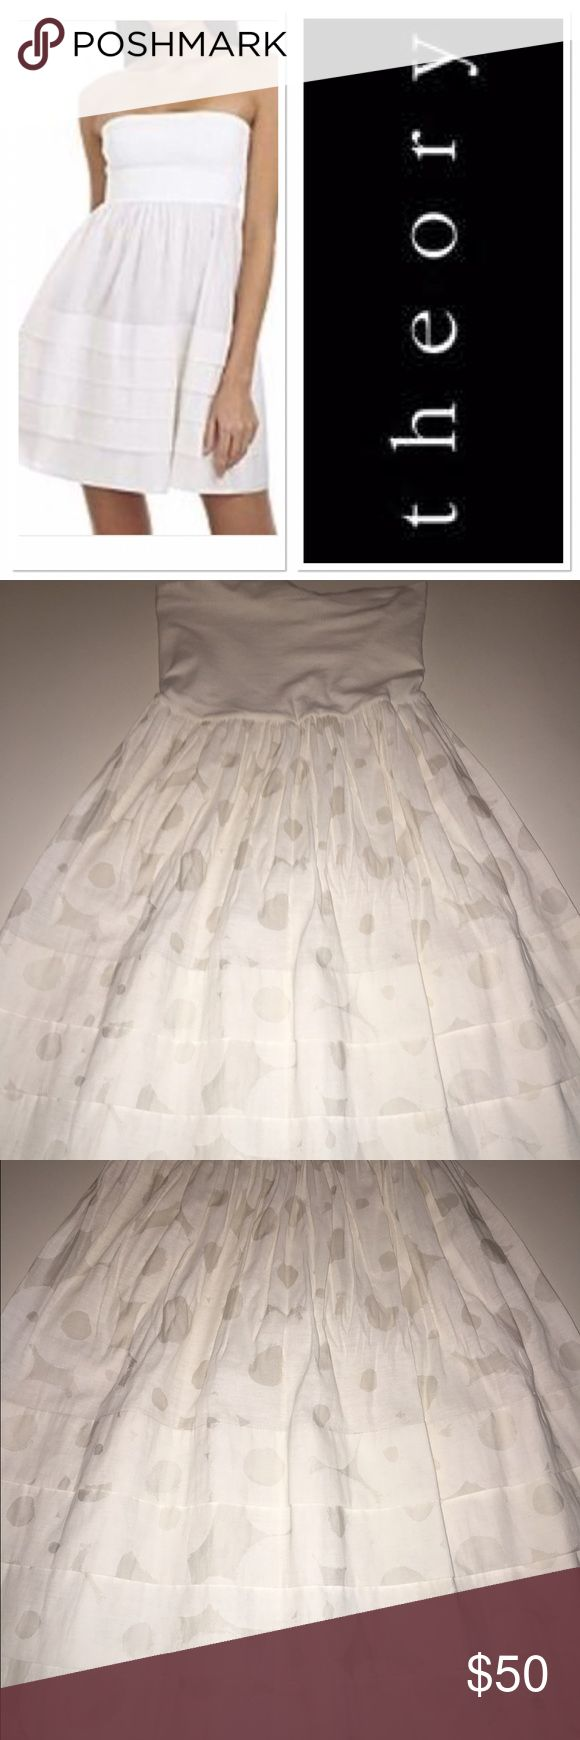 Theory strapless white dress Gorgeous white tube top dress with flare bottom that has subtle polkadots says OS I would say it's a small Theory Dresses Strapless